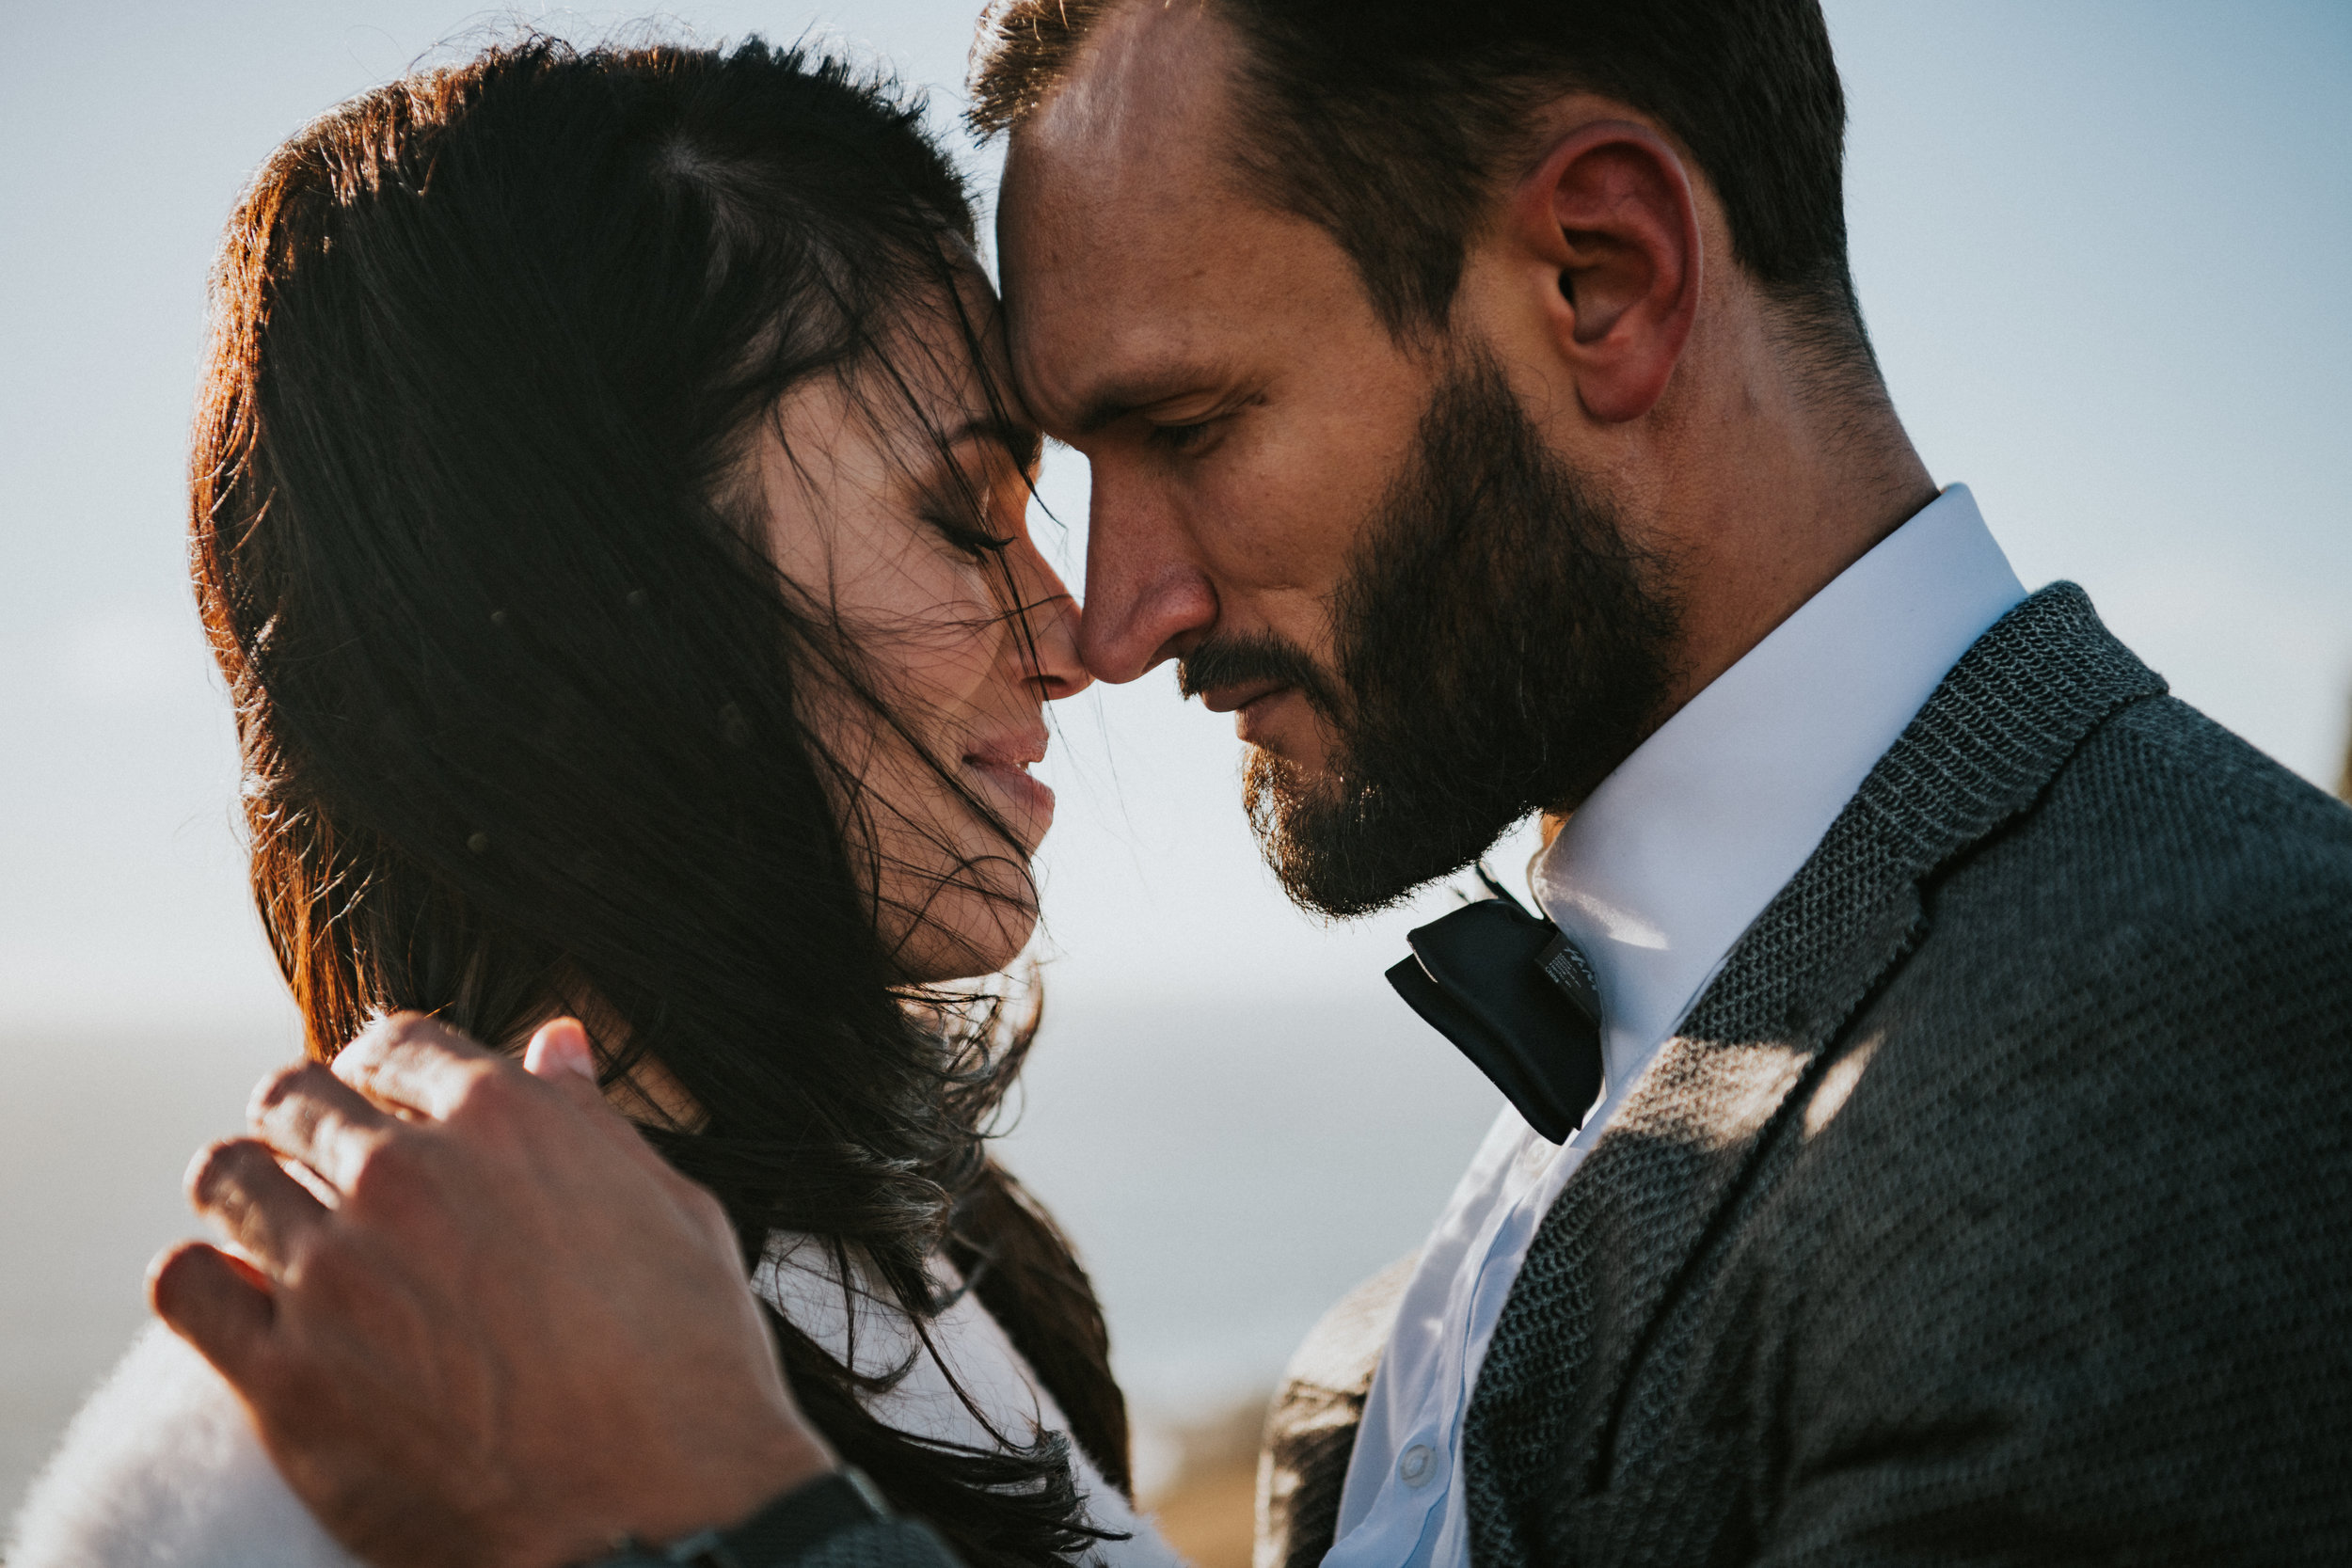 Natalie-Vitaly-Iceland-Elopement-Photographer-Videographer-28